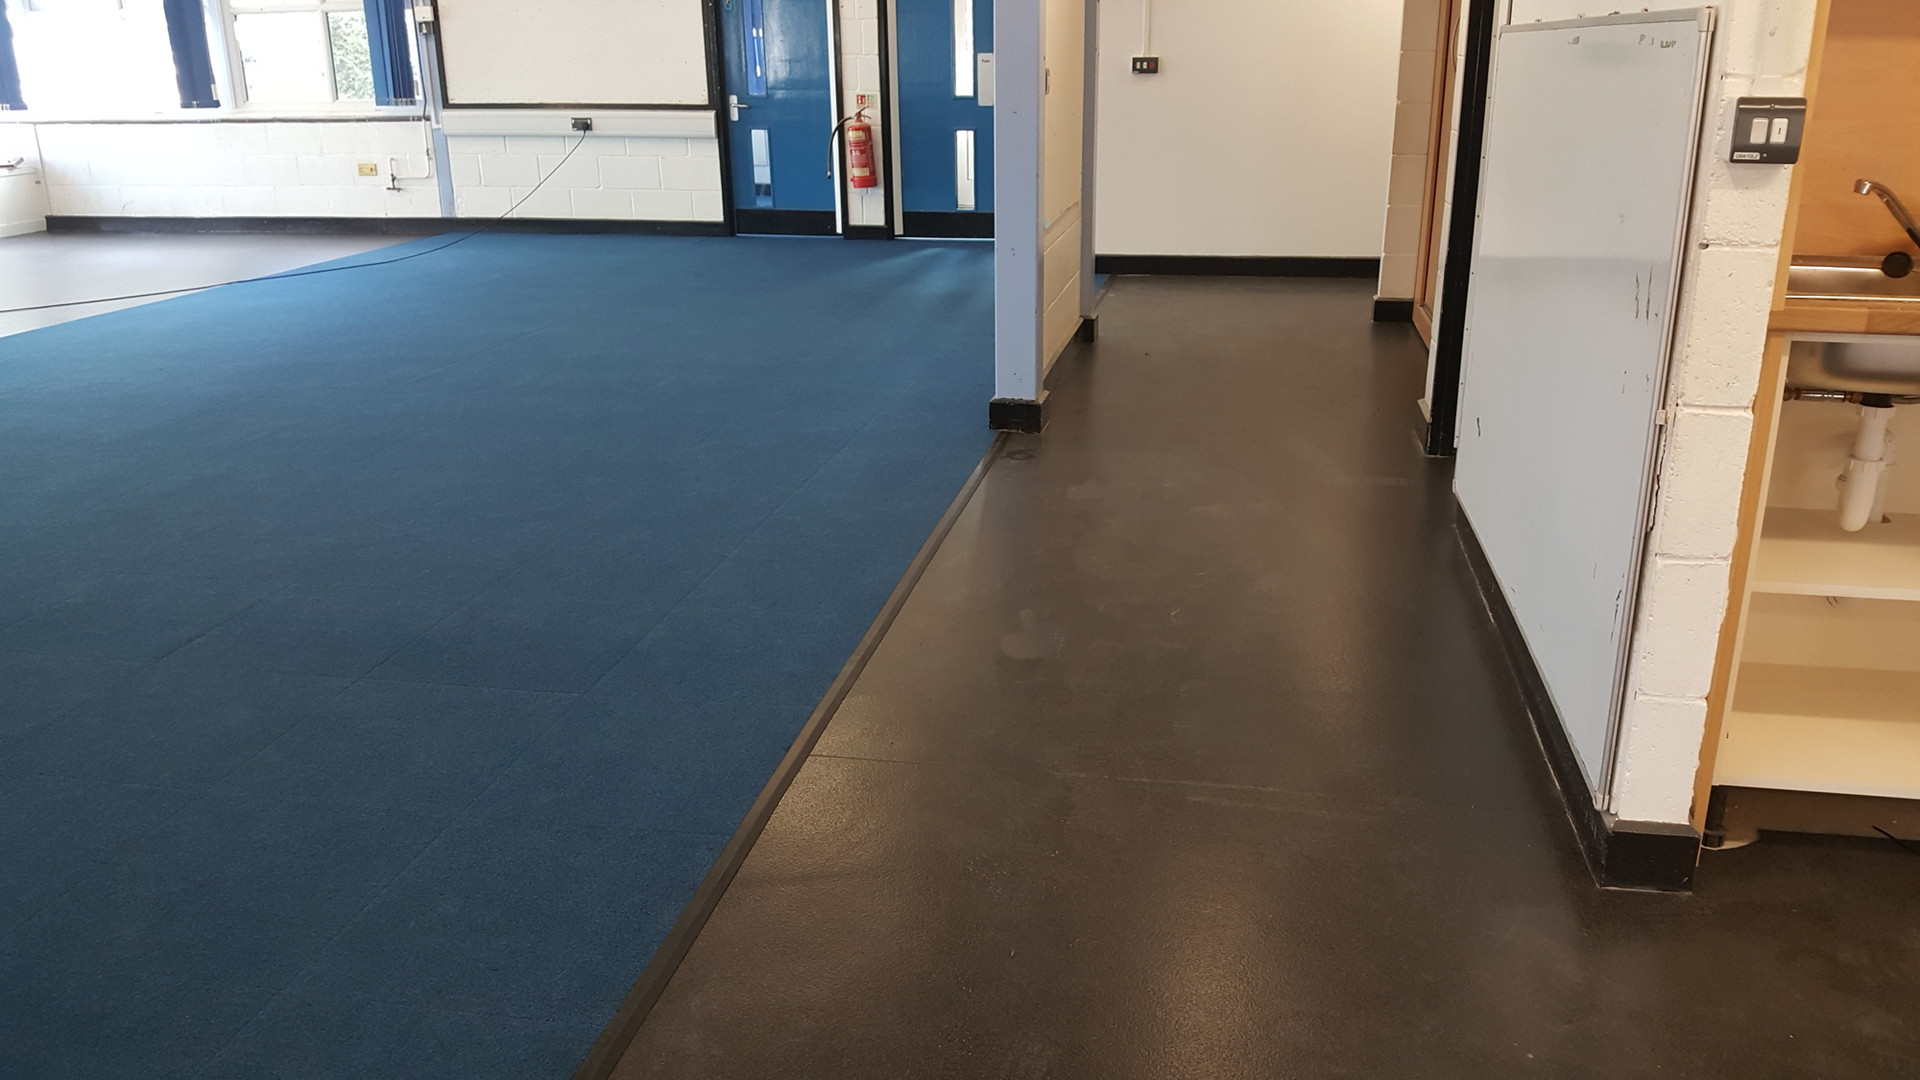 Replacement floorng after flood